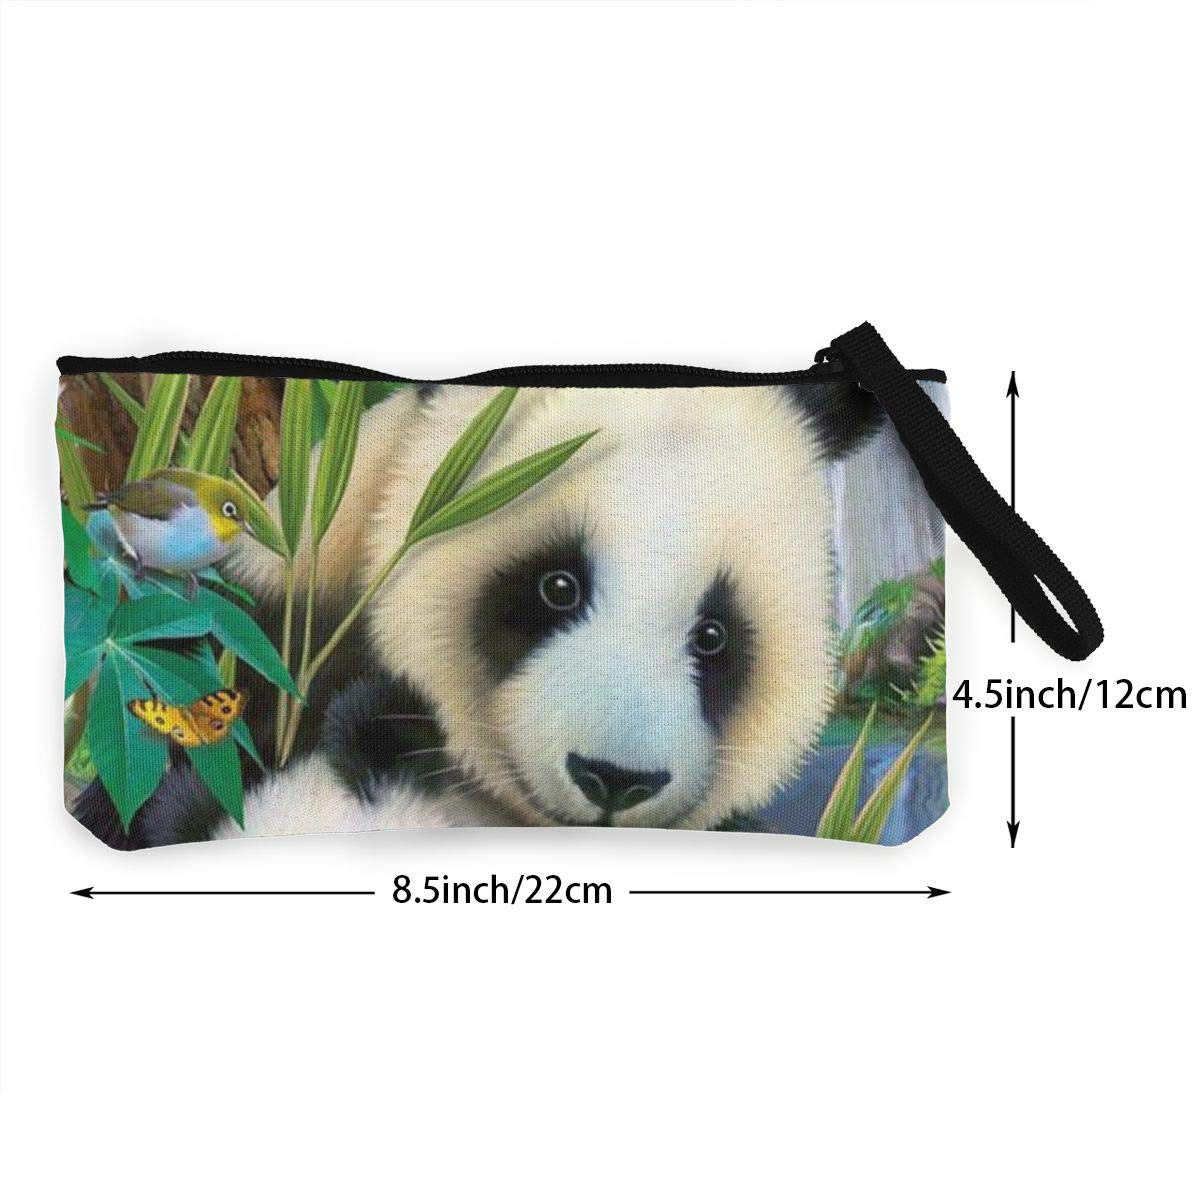 Precious Pandas Womens Canvas Coin Purse Mini Change Wallet Pouch-Card Holder Phone Wallet Storage Bag,Pencil Pen Case